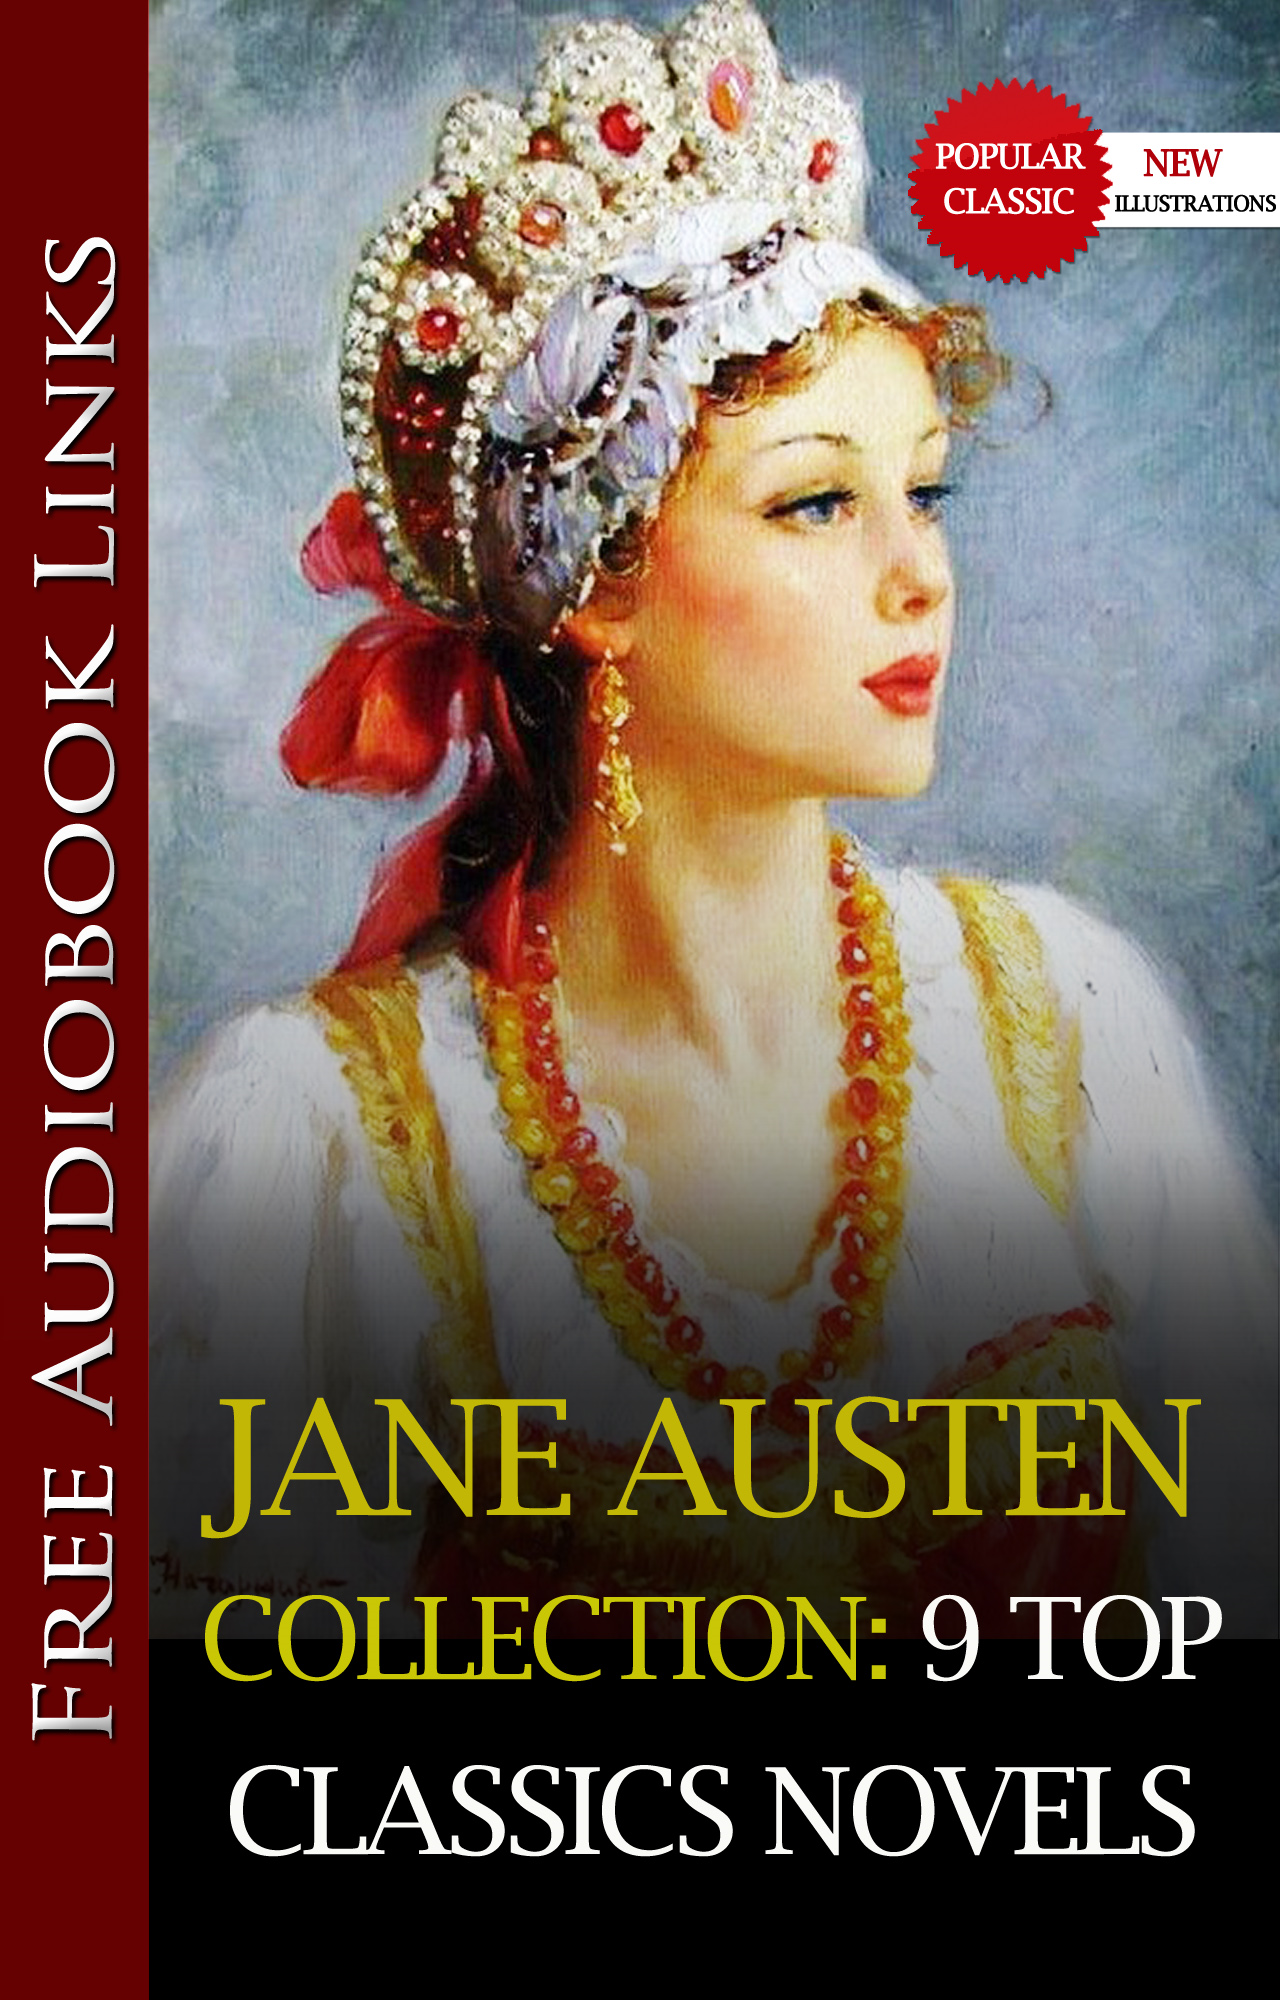 The JANE AUSTEN COLLECTION 9 TOP CLASSICS NOVELS (with Free Audio Links)(SENSE AND SENSIBILITY,PRIDE AND PREJUDICE,MANSFIELD PARK,EMMA,NORTHANGER ABBEY,PERSUASION,LADY SUSAN,SANDITON,THE WATSONS)